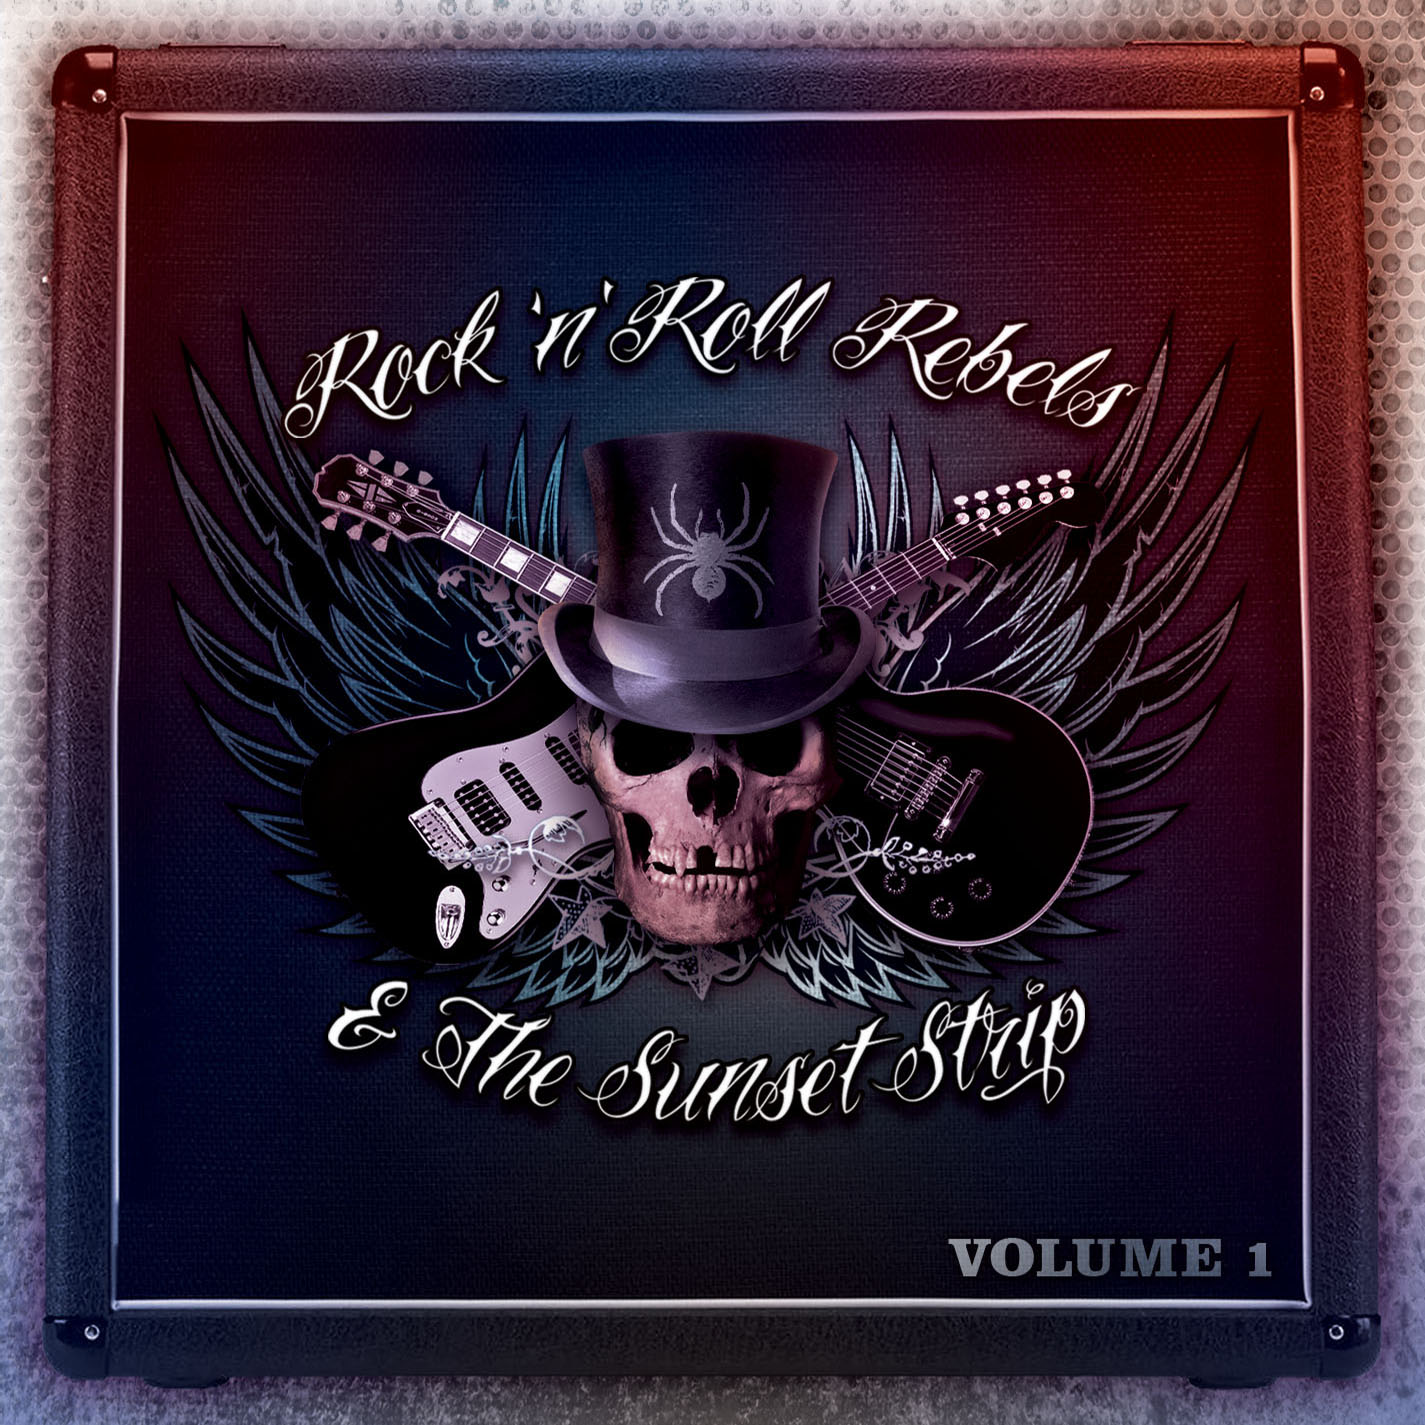 Rock 'n' Roll Rebels & the Sunset Strip Volume One